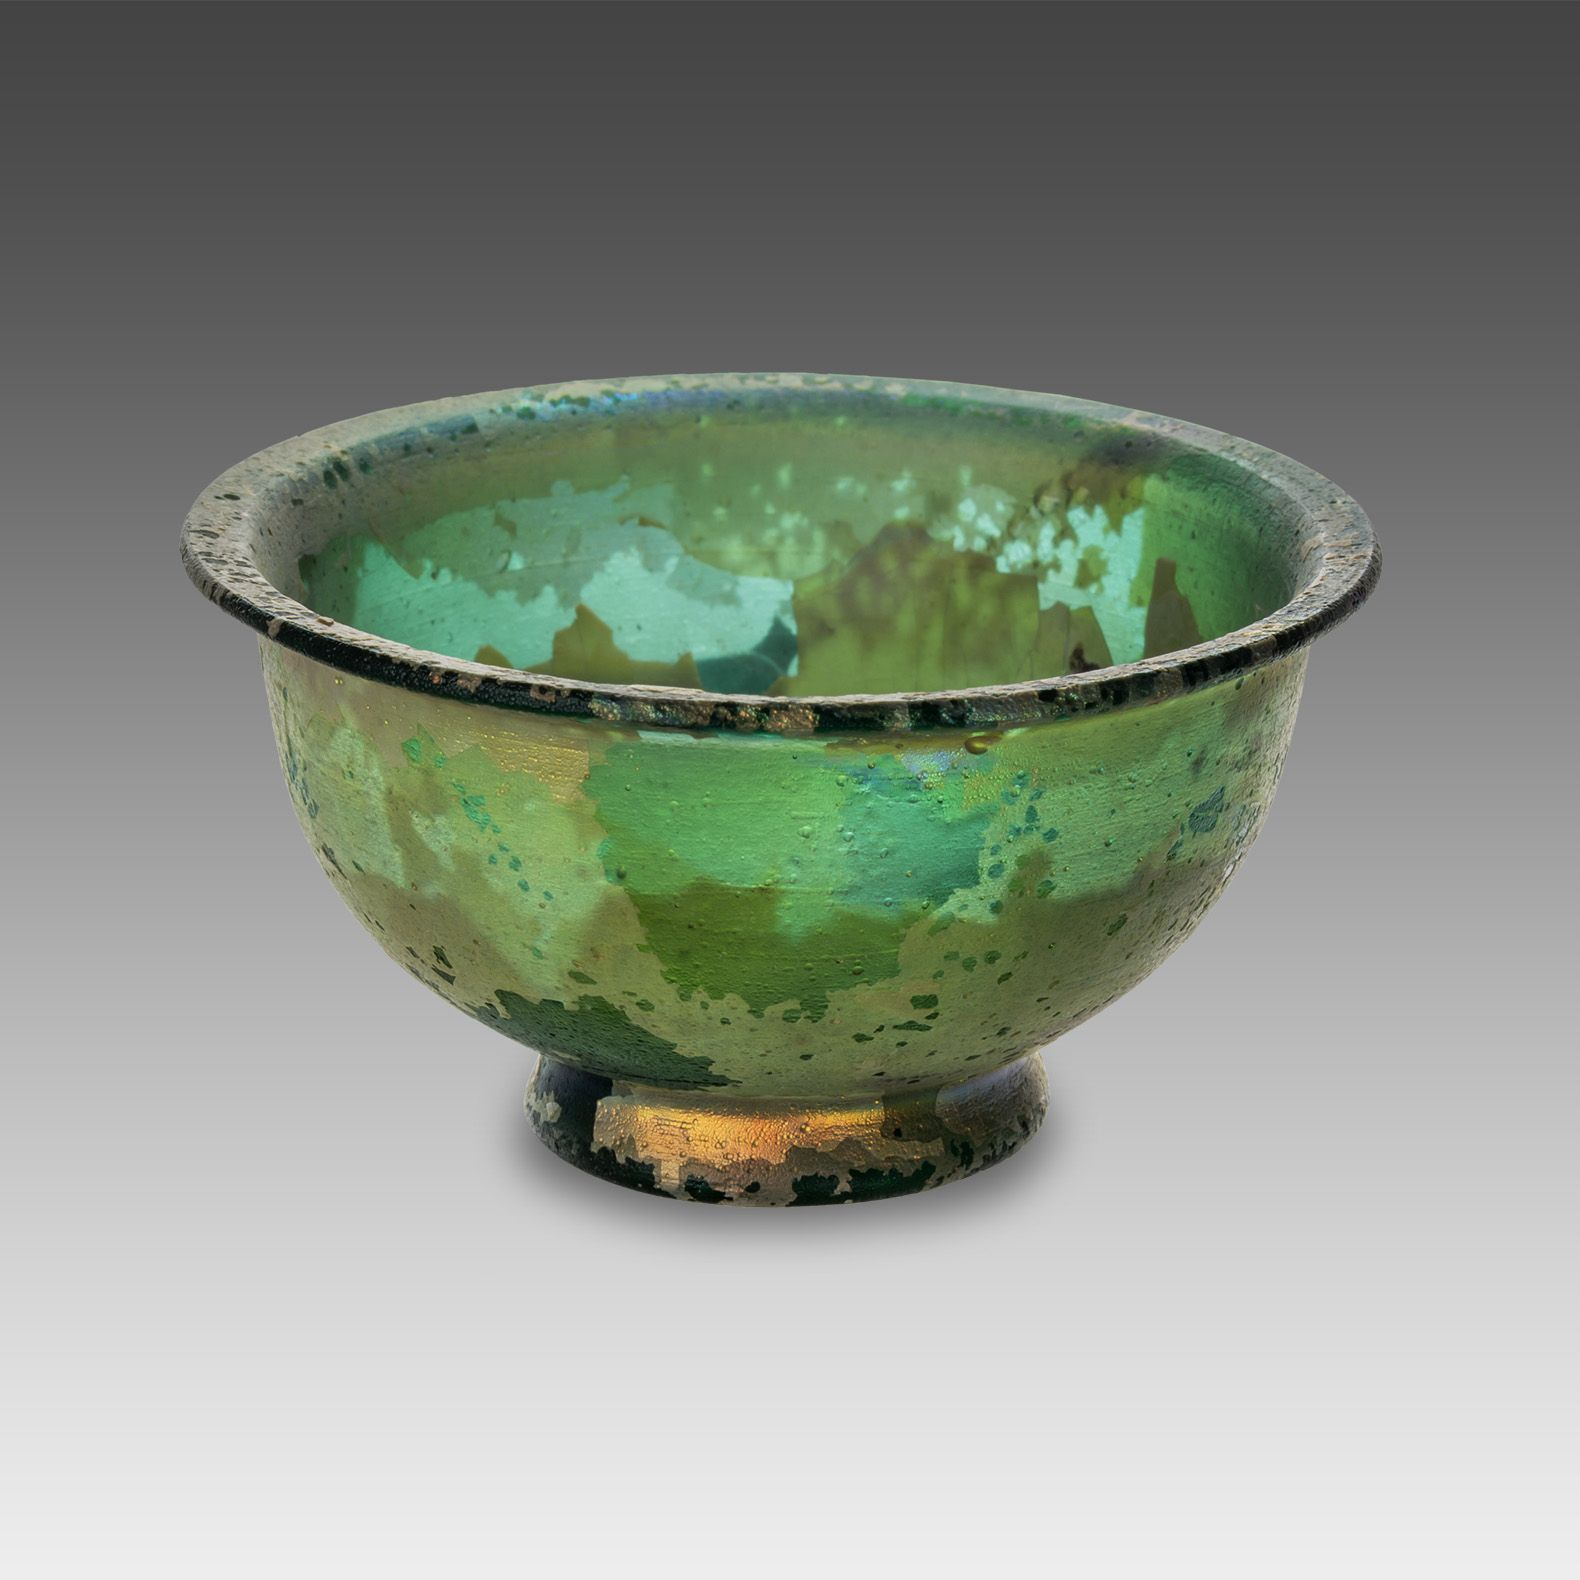 Roman small glass cup (Patella), 1st century AD